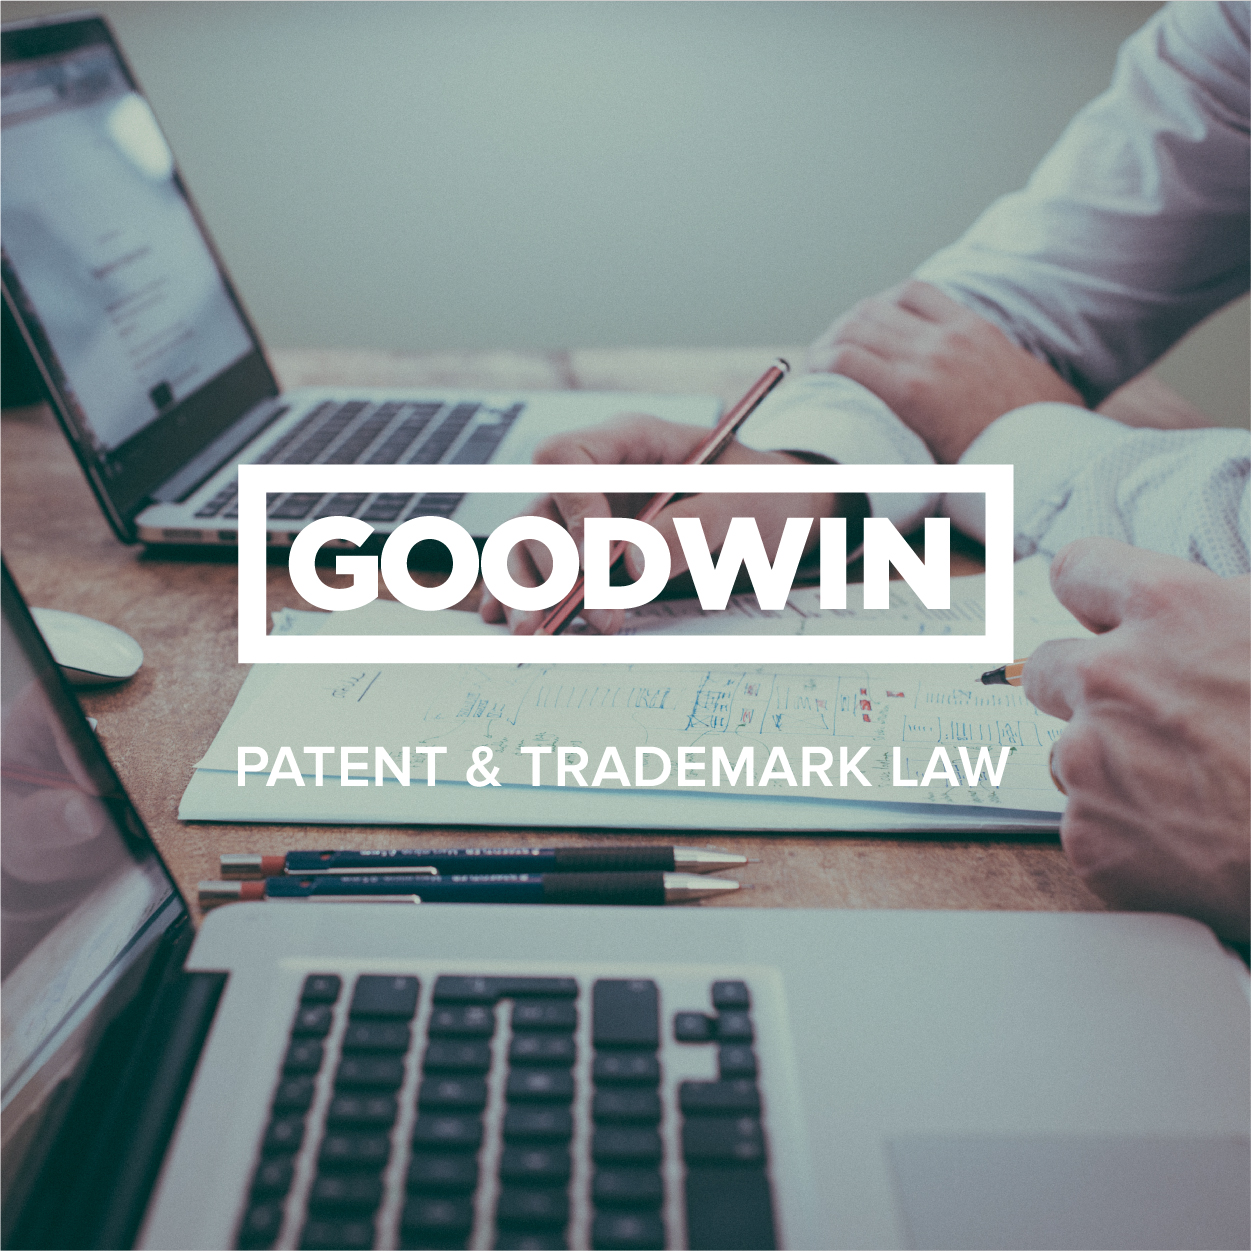 <p><strong>Goodwin Law</strong></p>